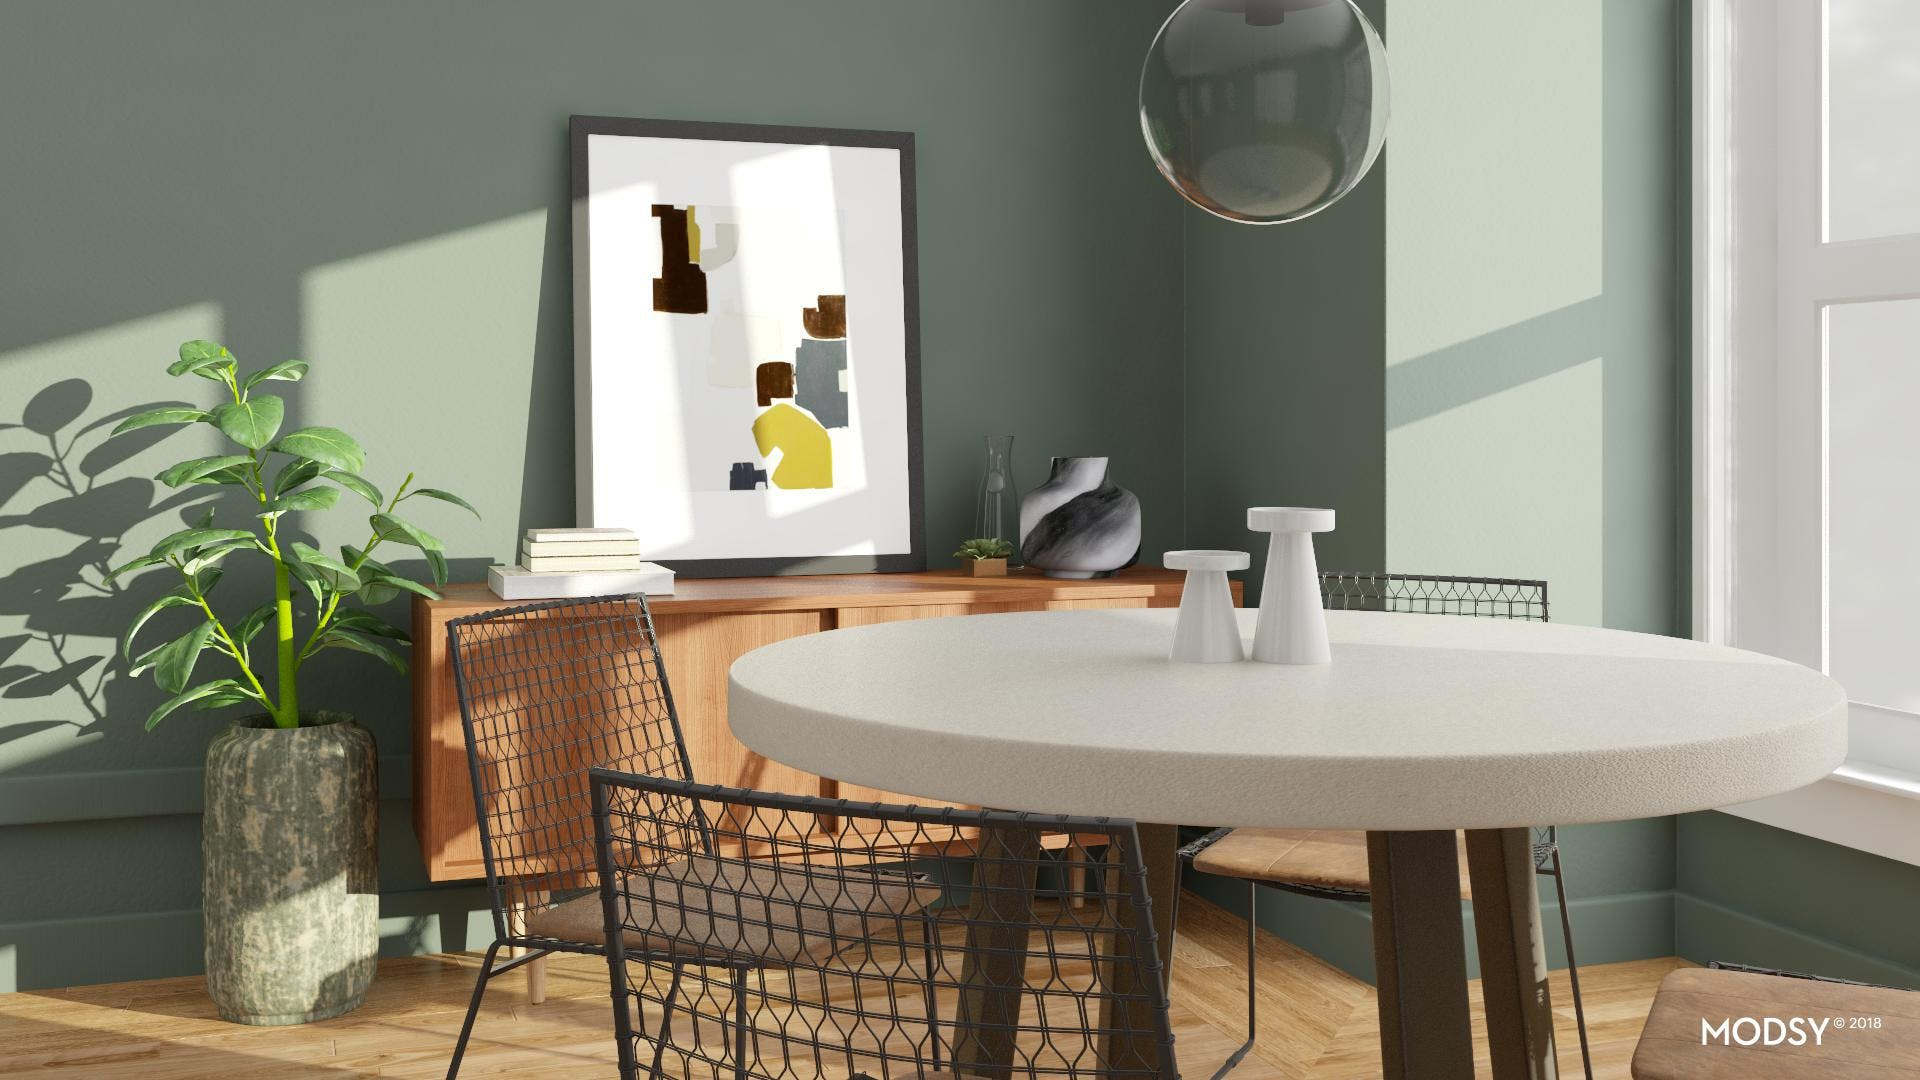 Sideboard Styling Ideas For The Dining Room